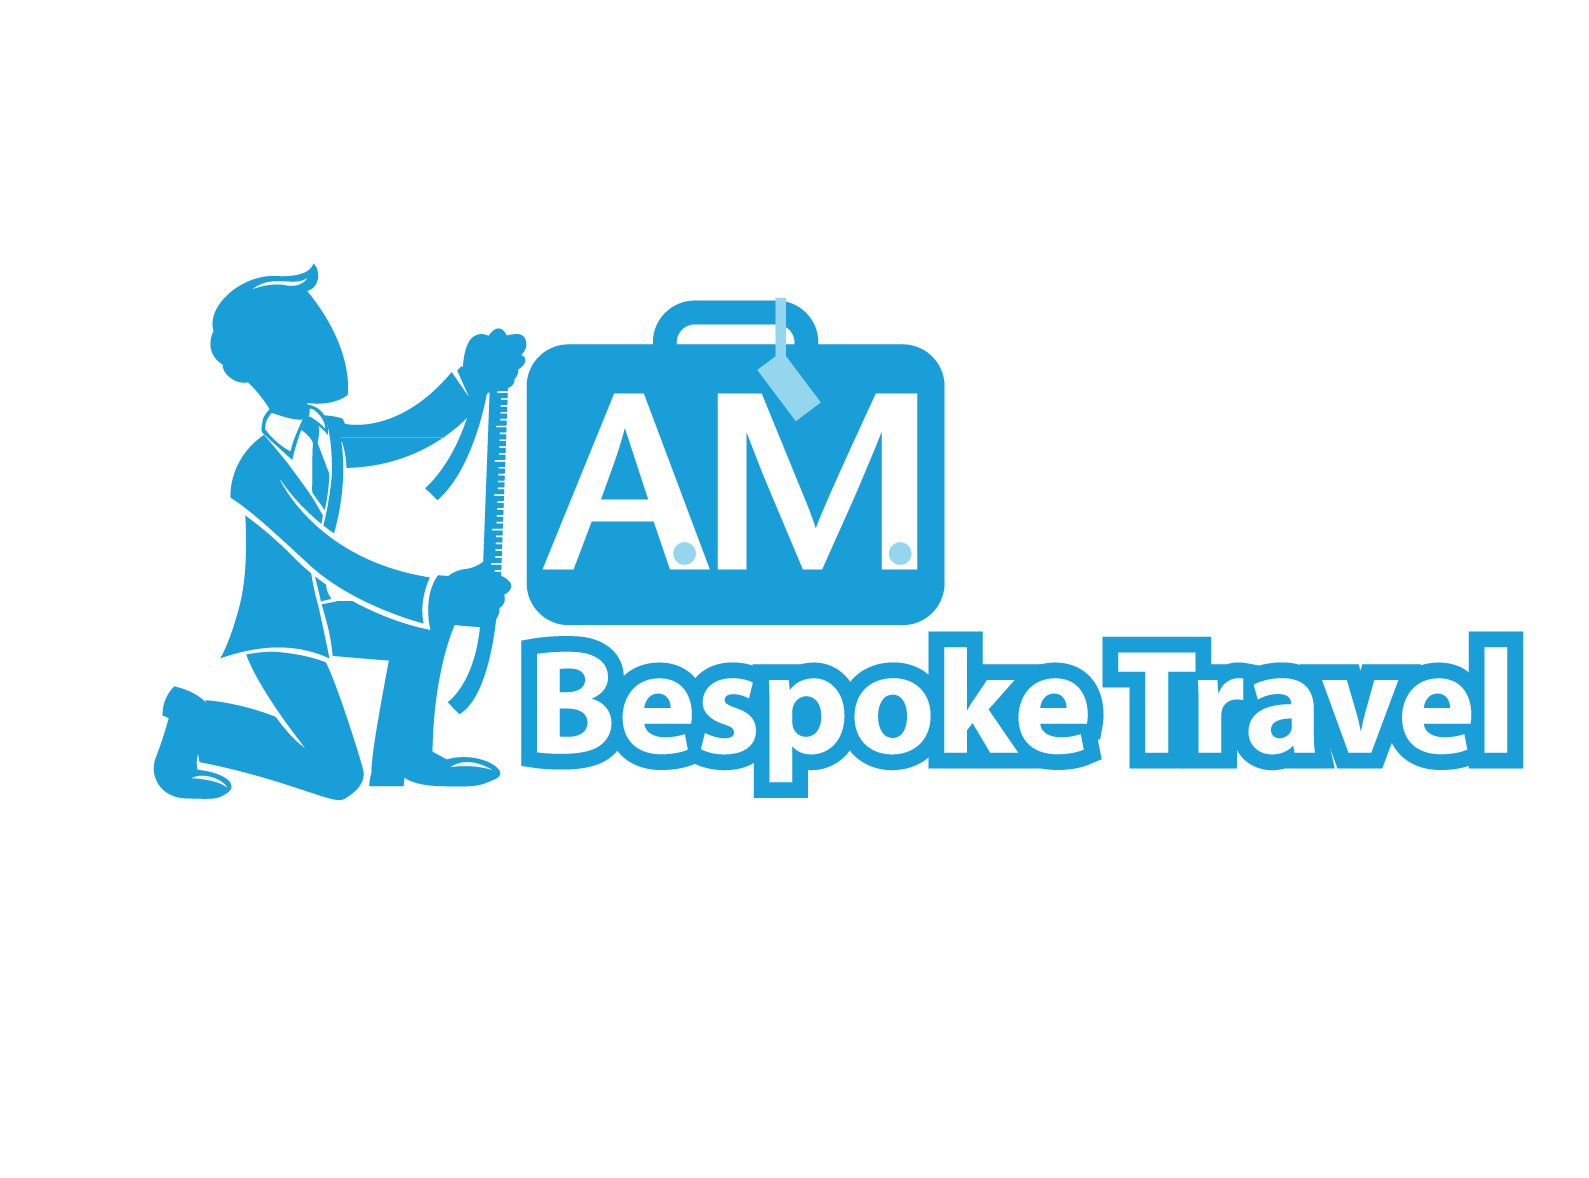 EXTENDED - Help A.M. Bespoke Travel with a new logo